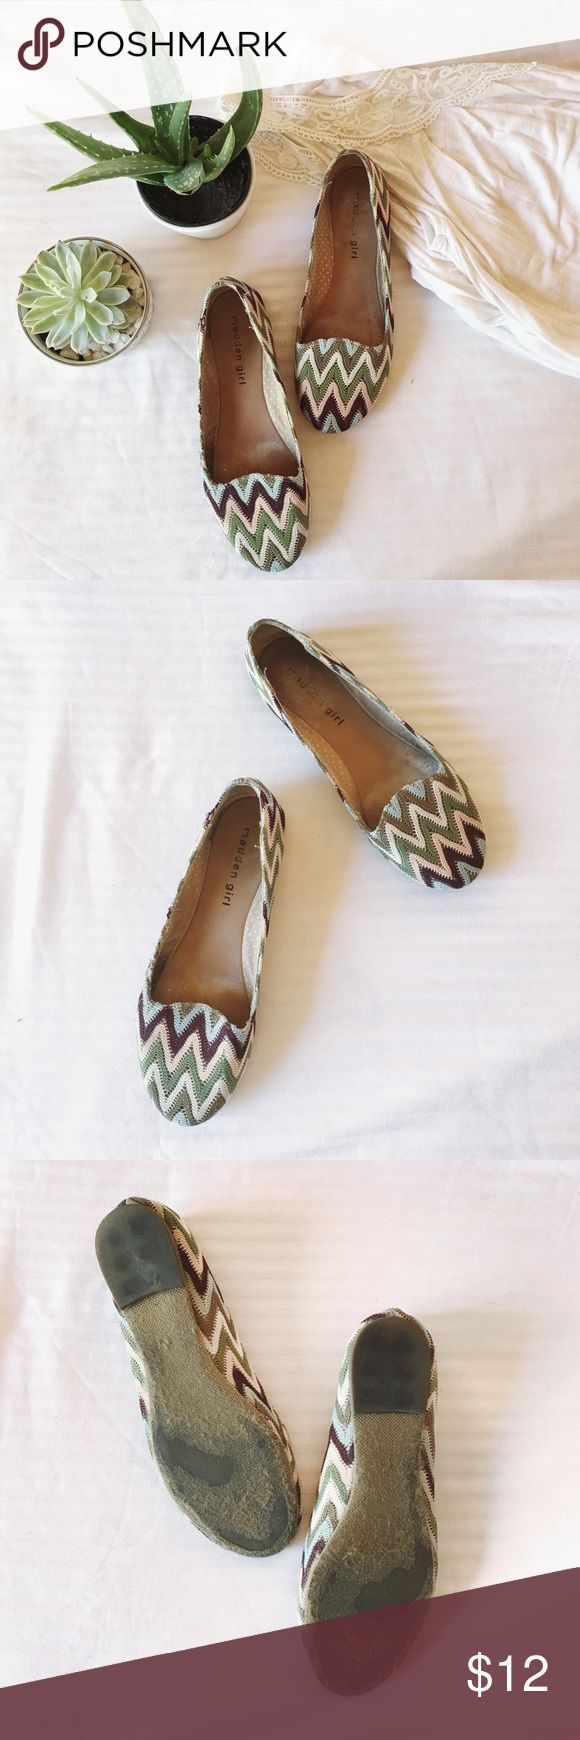 Tribal Print Flats Madden Girl Tribal print flats Size: 5.5 Used; tiny flaws shown on pics (stitches off and little tear on the side)  Other items NOT included ‼️‼️  All sales are final; NO return/ exchange  #tribalprint #flats #size5.5 #maddengirl #maddengirl5.5 Madden Girl Shoes Flats & Loafers